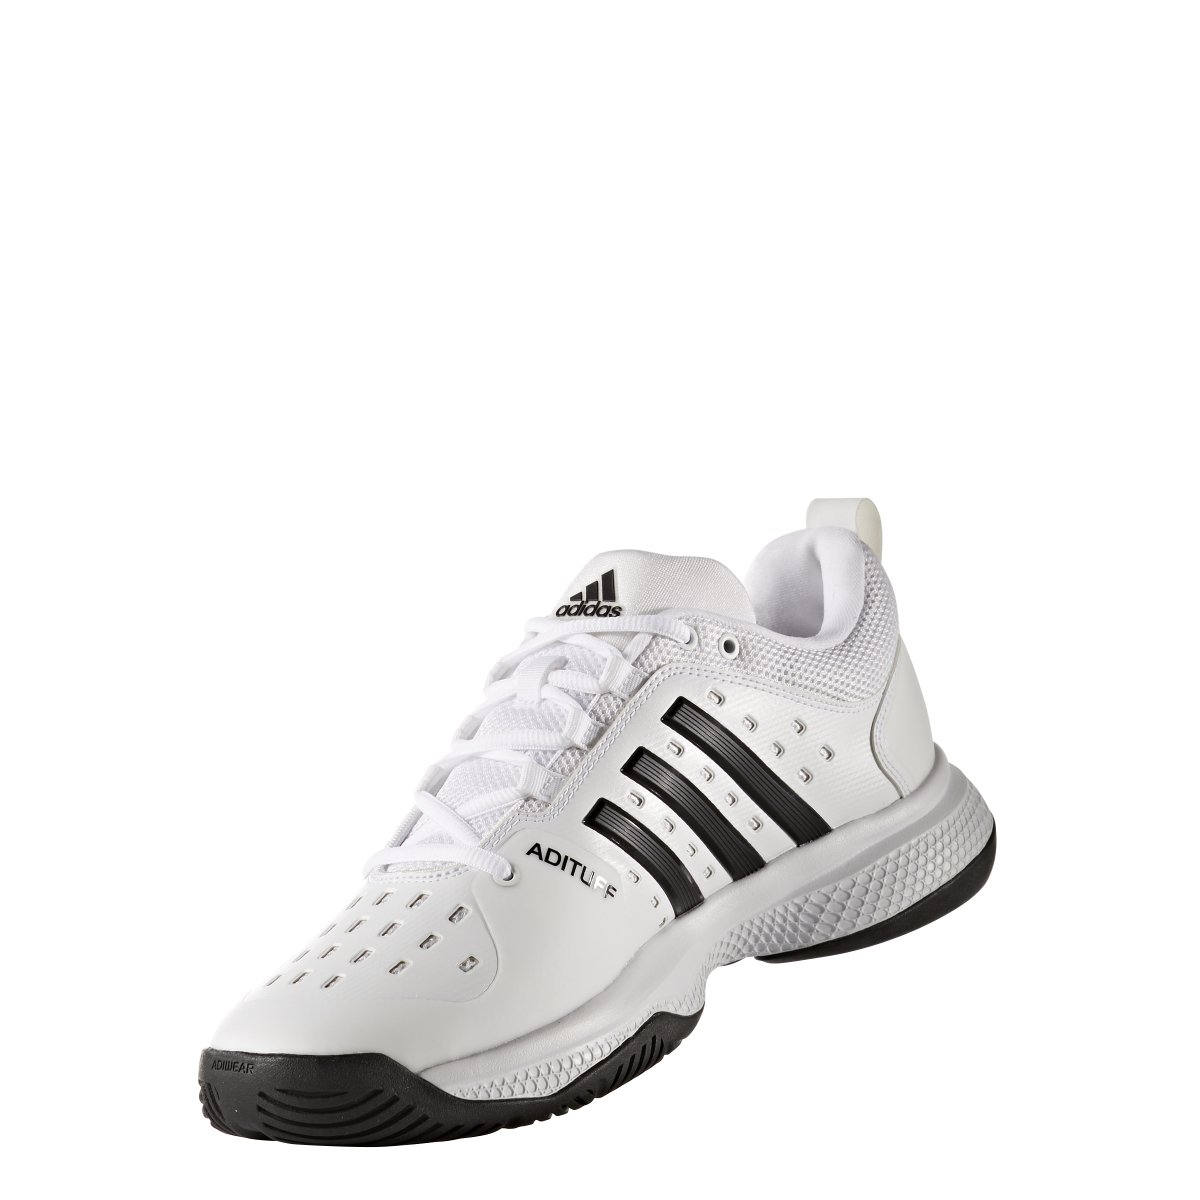 adidas Men's Barricade Classic Bounce Tennis Shoes, White/Black/White, (10.5 M US) by adidas